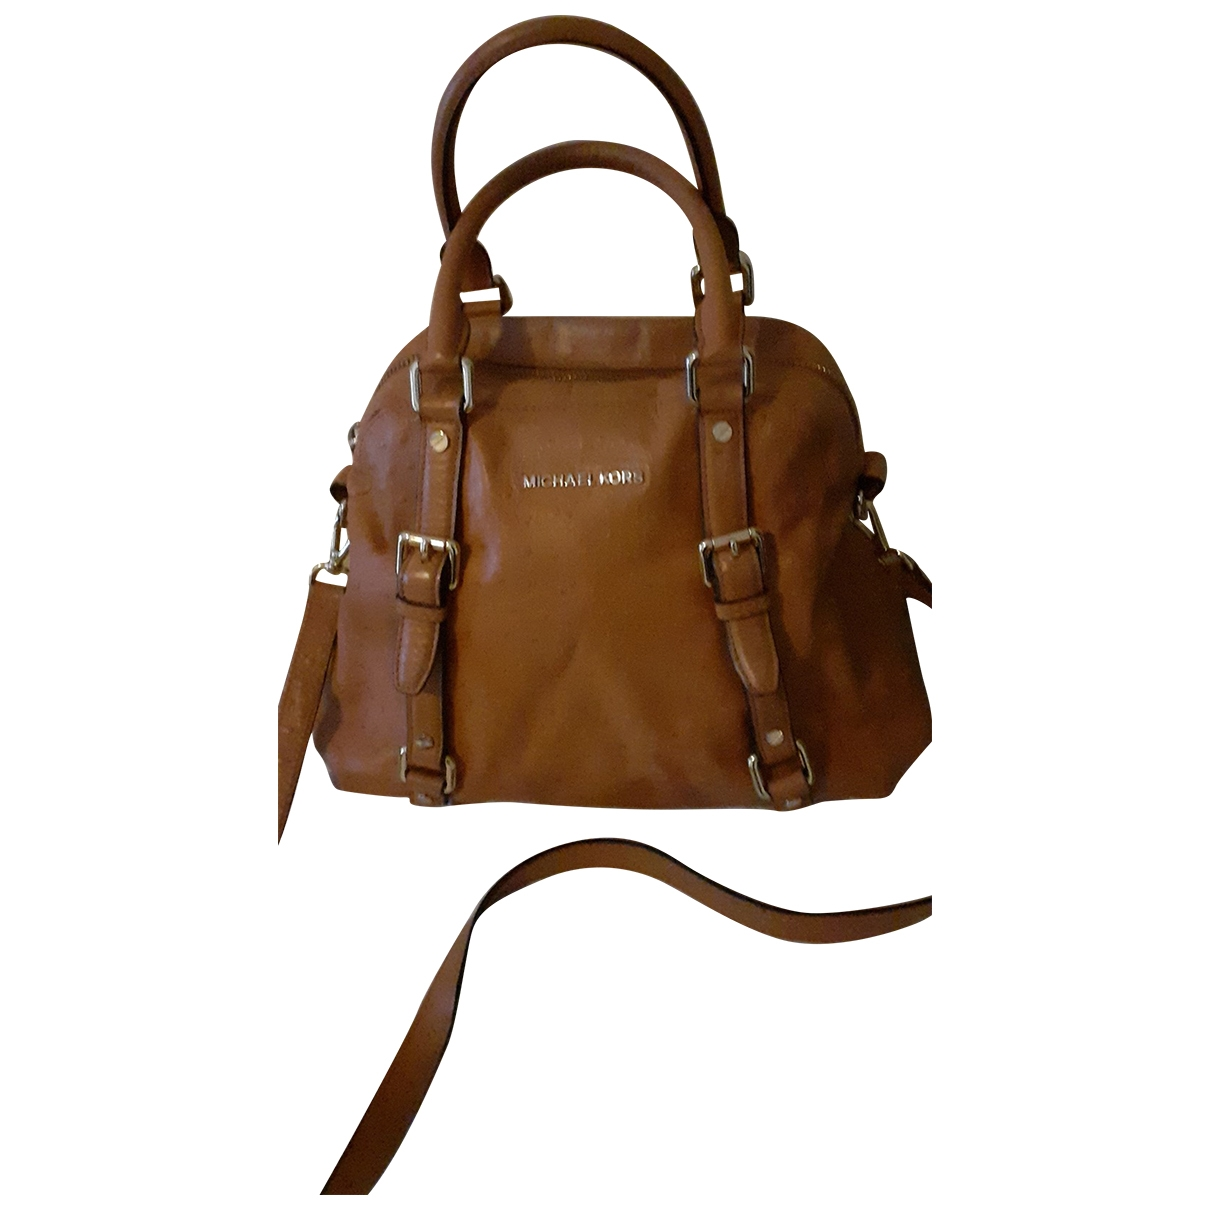 Michael Kors \N Camel Leather handbag for Women \N